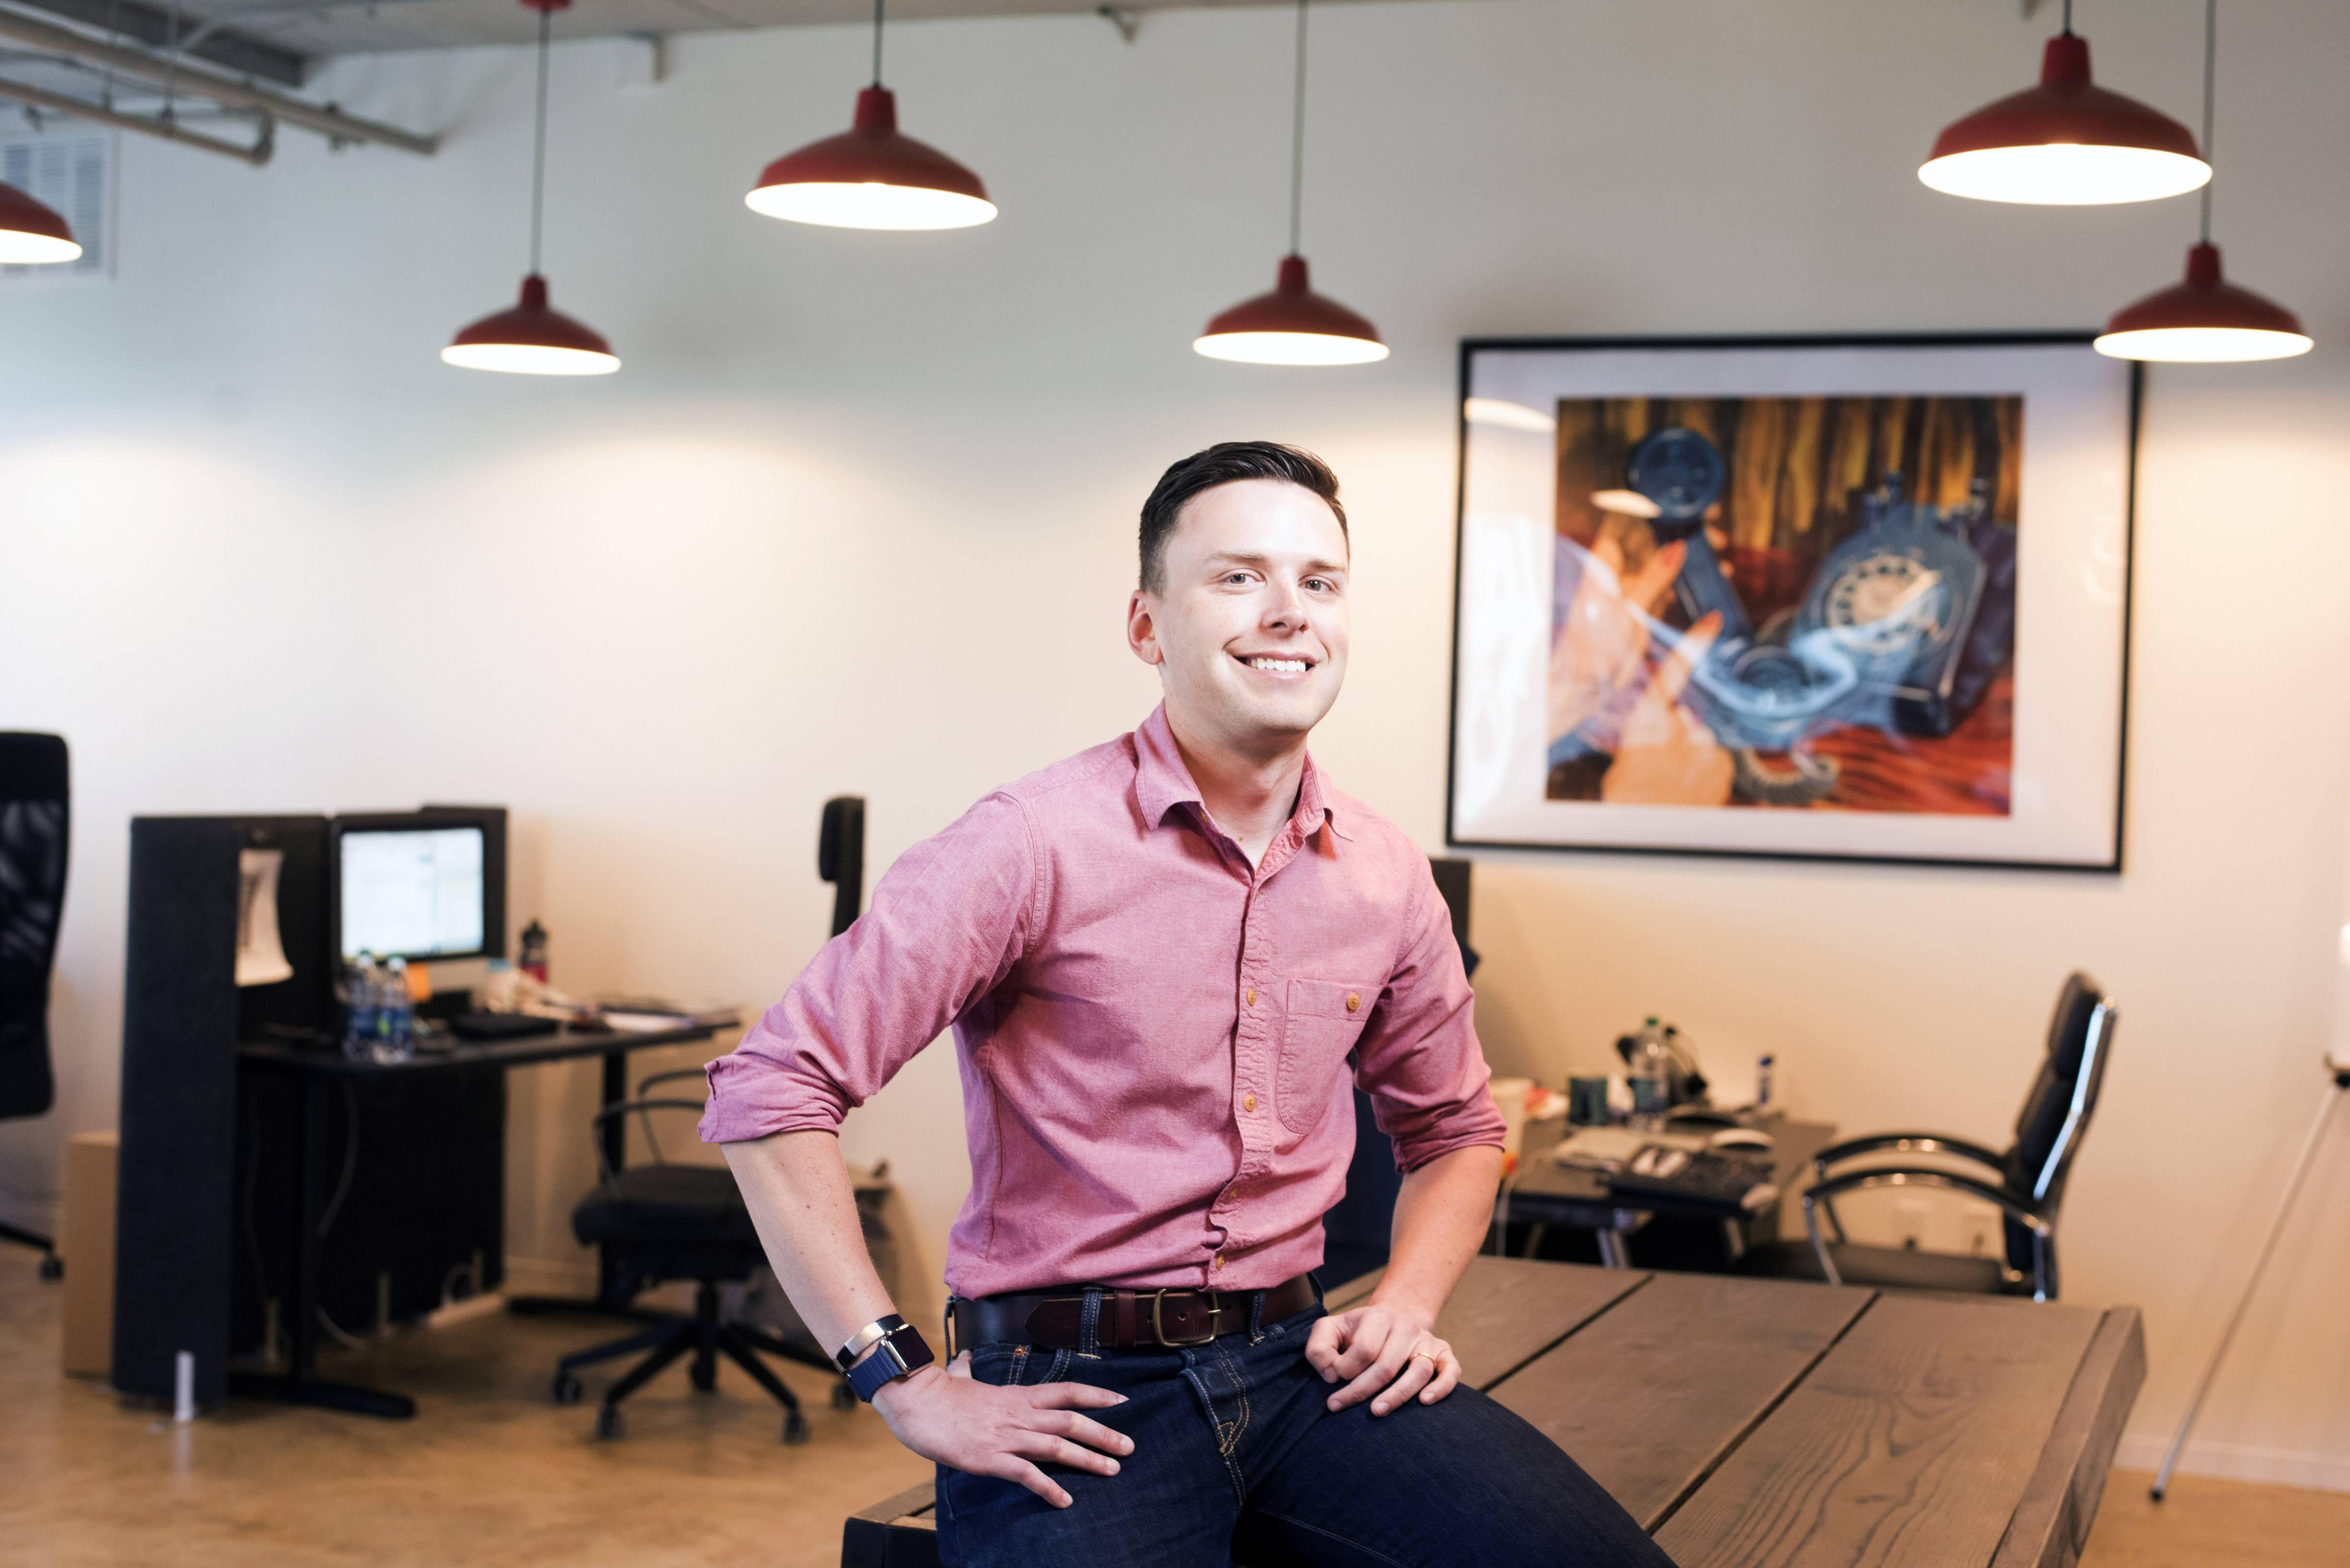 Myke Nahorniak, in the offices of Localist in Silver Spring, Maryland, created specialized calendar software that has found favor with universities and other institutions.